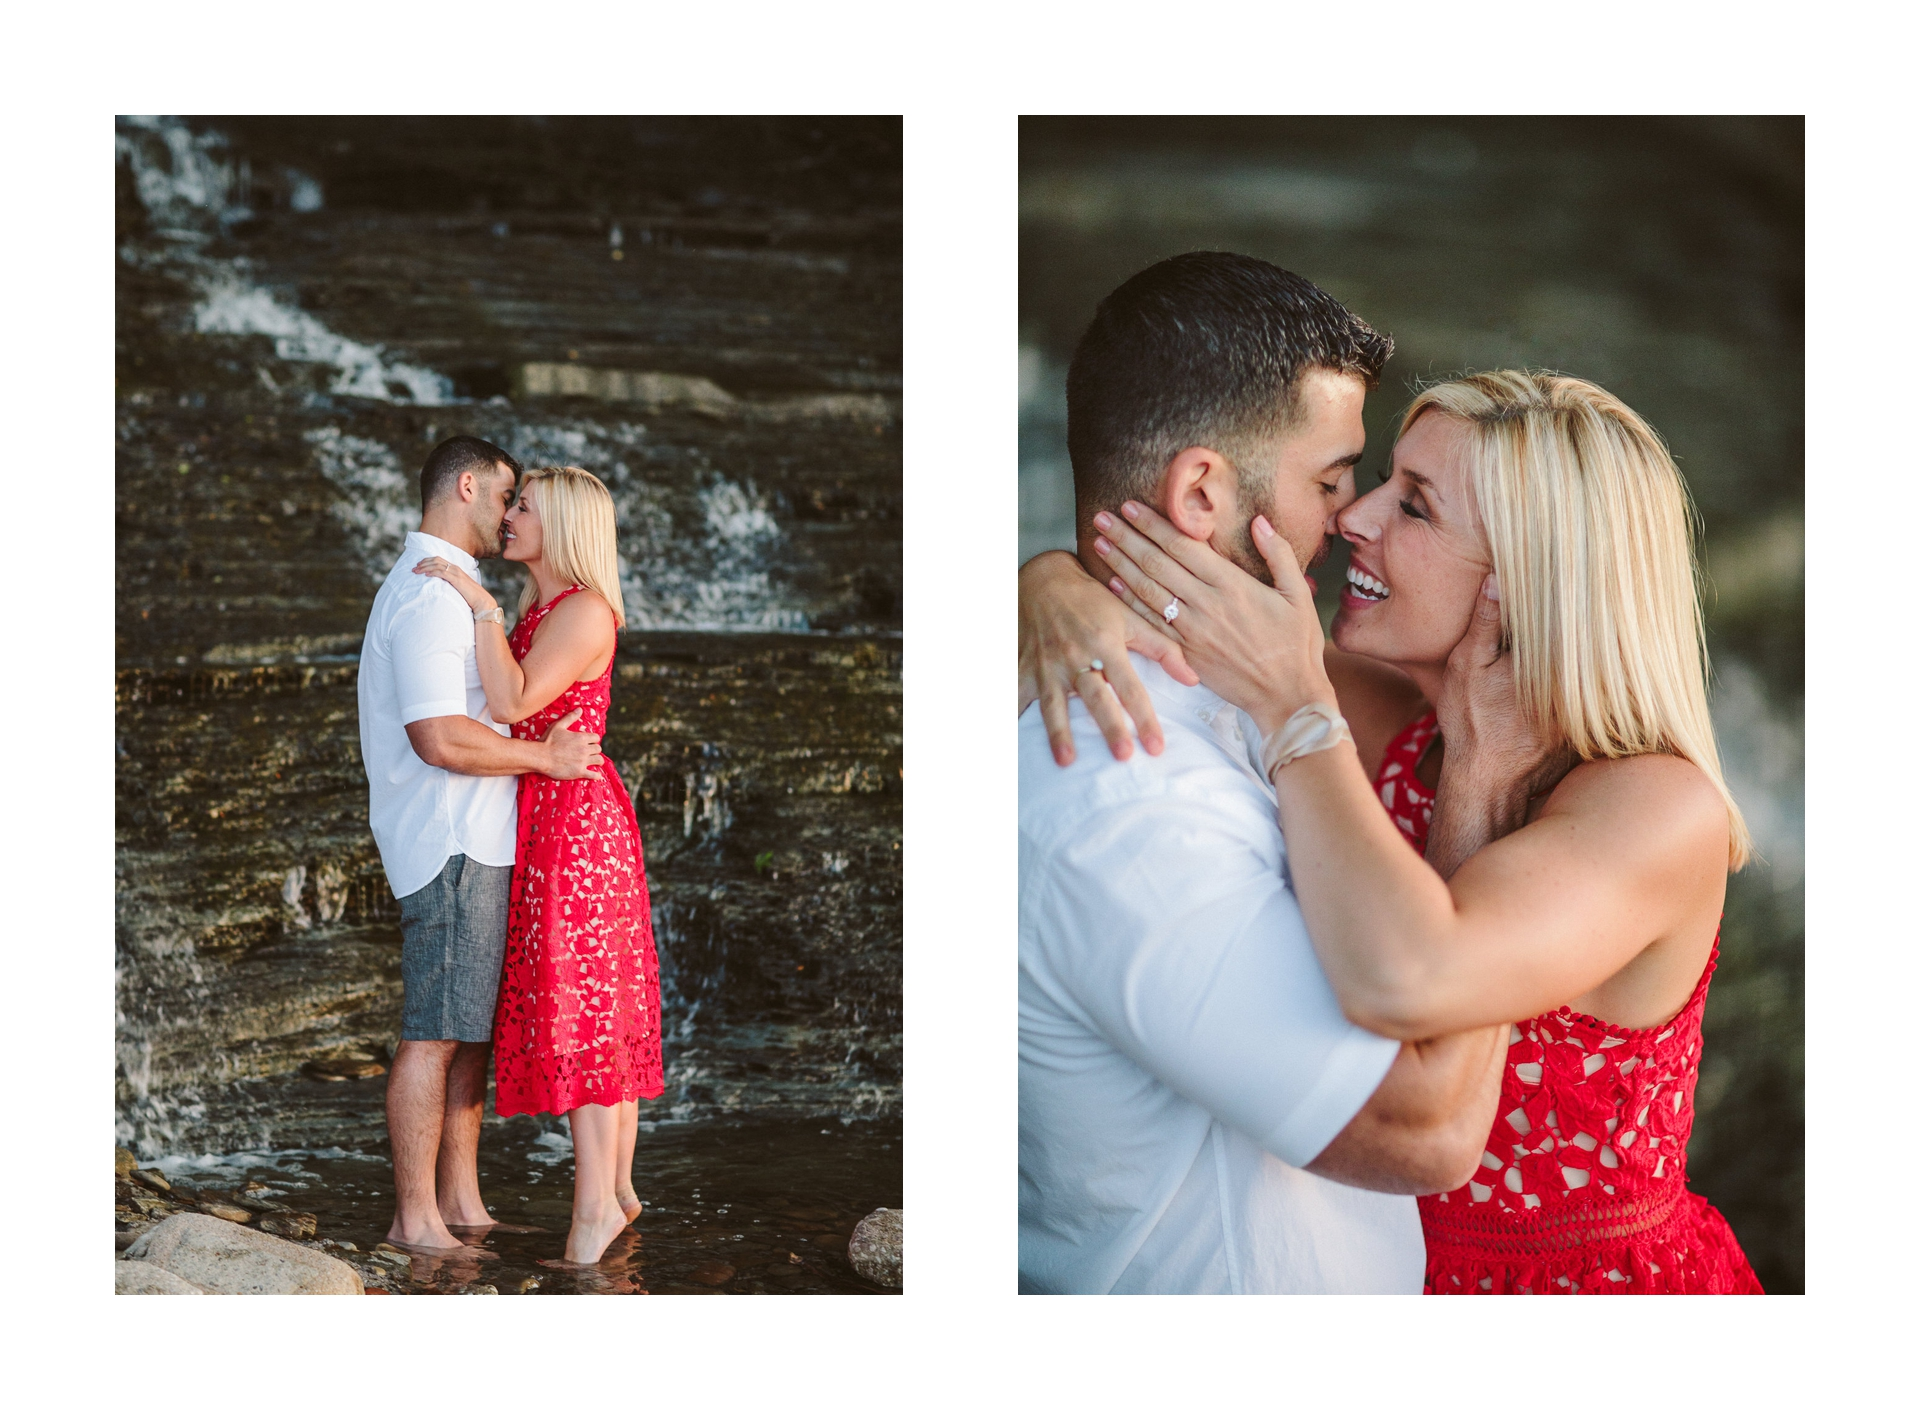 Sara Shookman Angelo DiFranco Engagement photos in cleveland by too much awesomeness photography 42.jpg